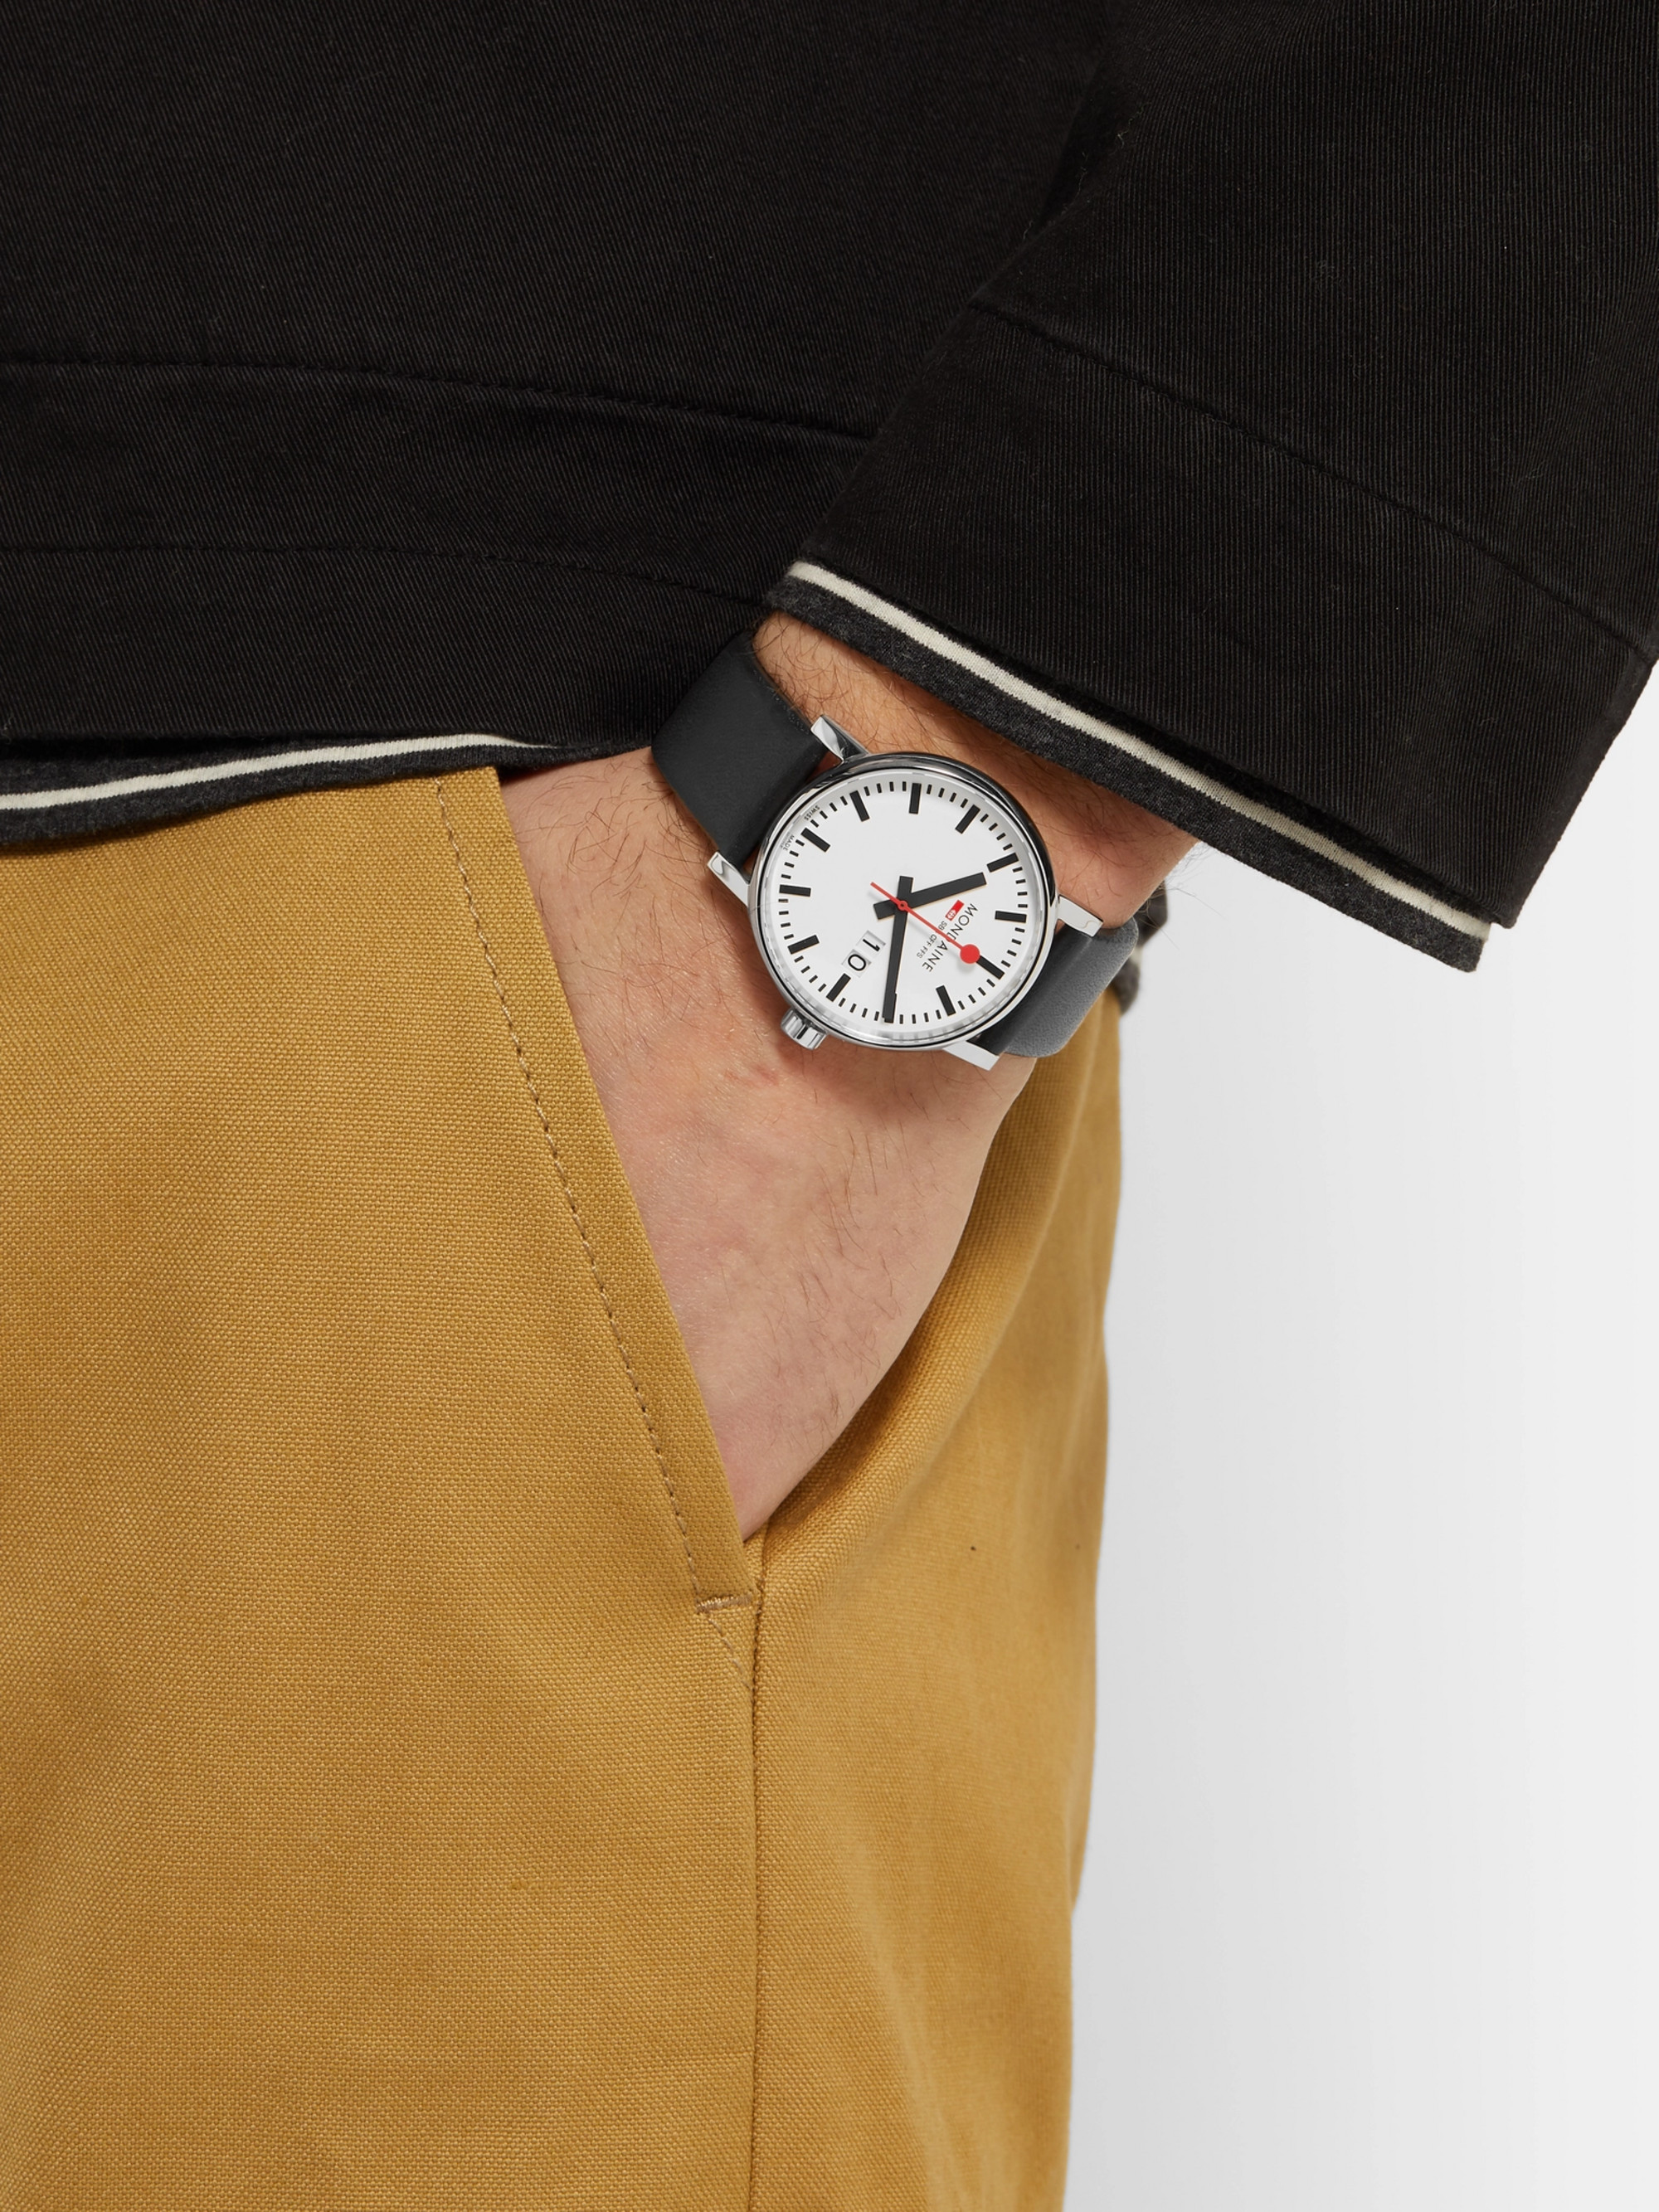 Inexpensive watches for men